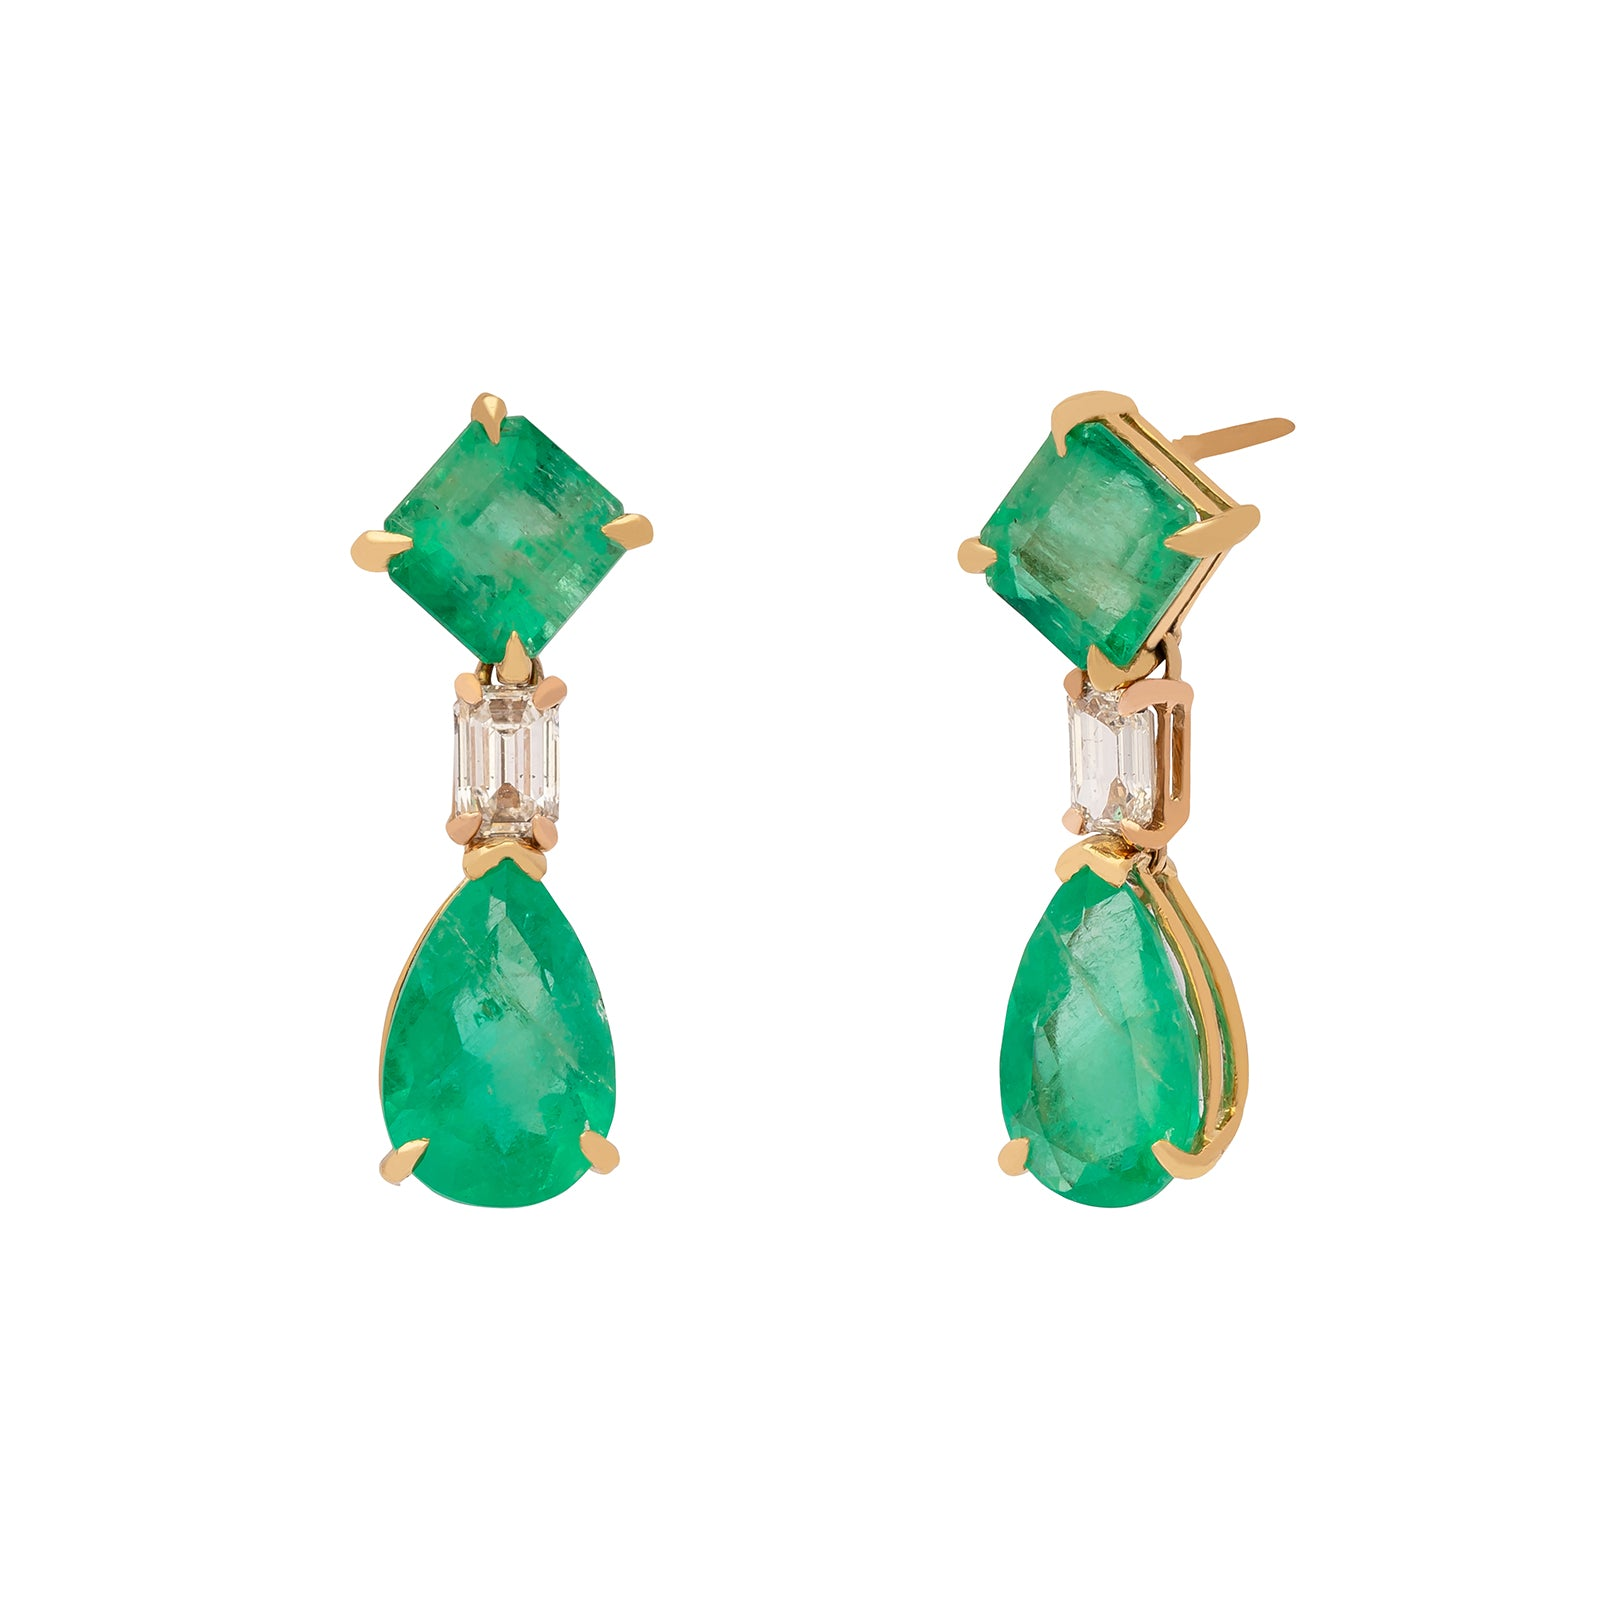 Shay Columbian Green Emerald & Diamond Drop Earrings - Earrings - Broken English Jewelry